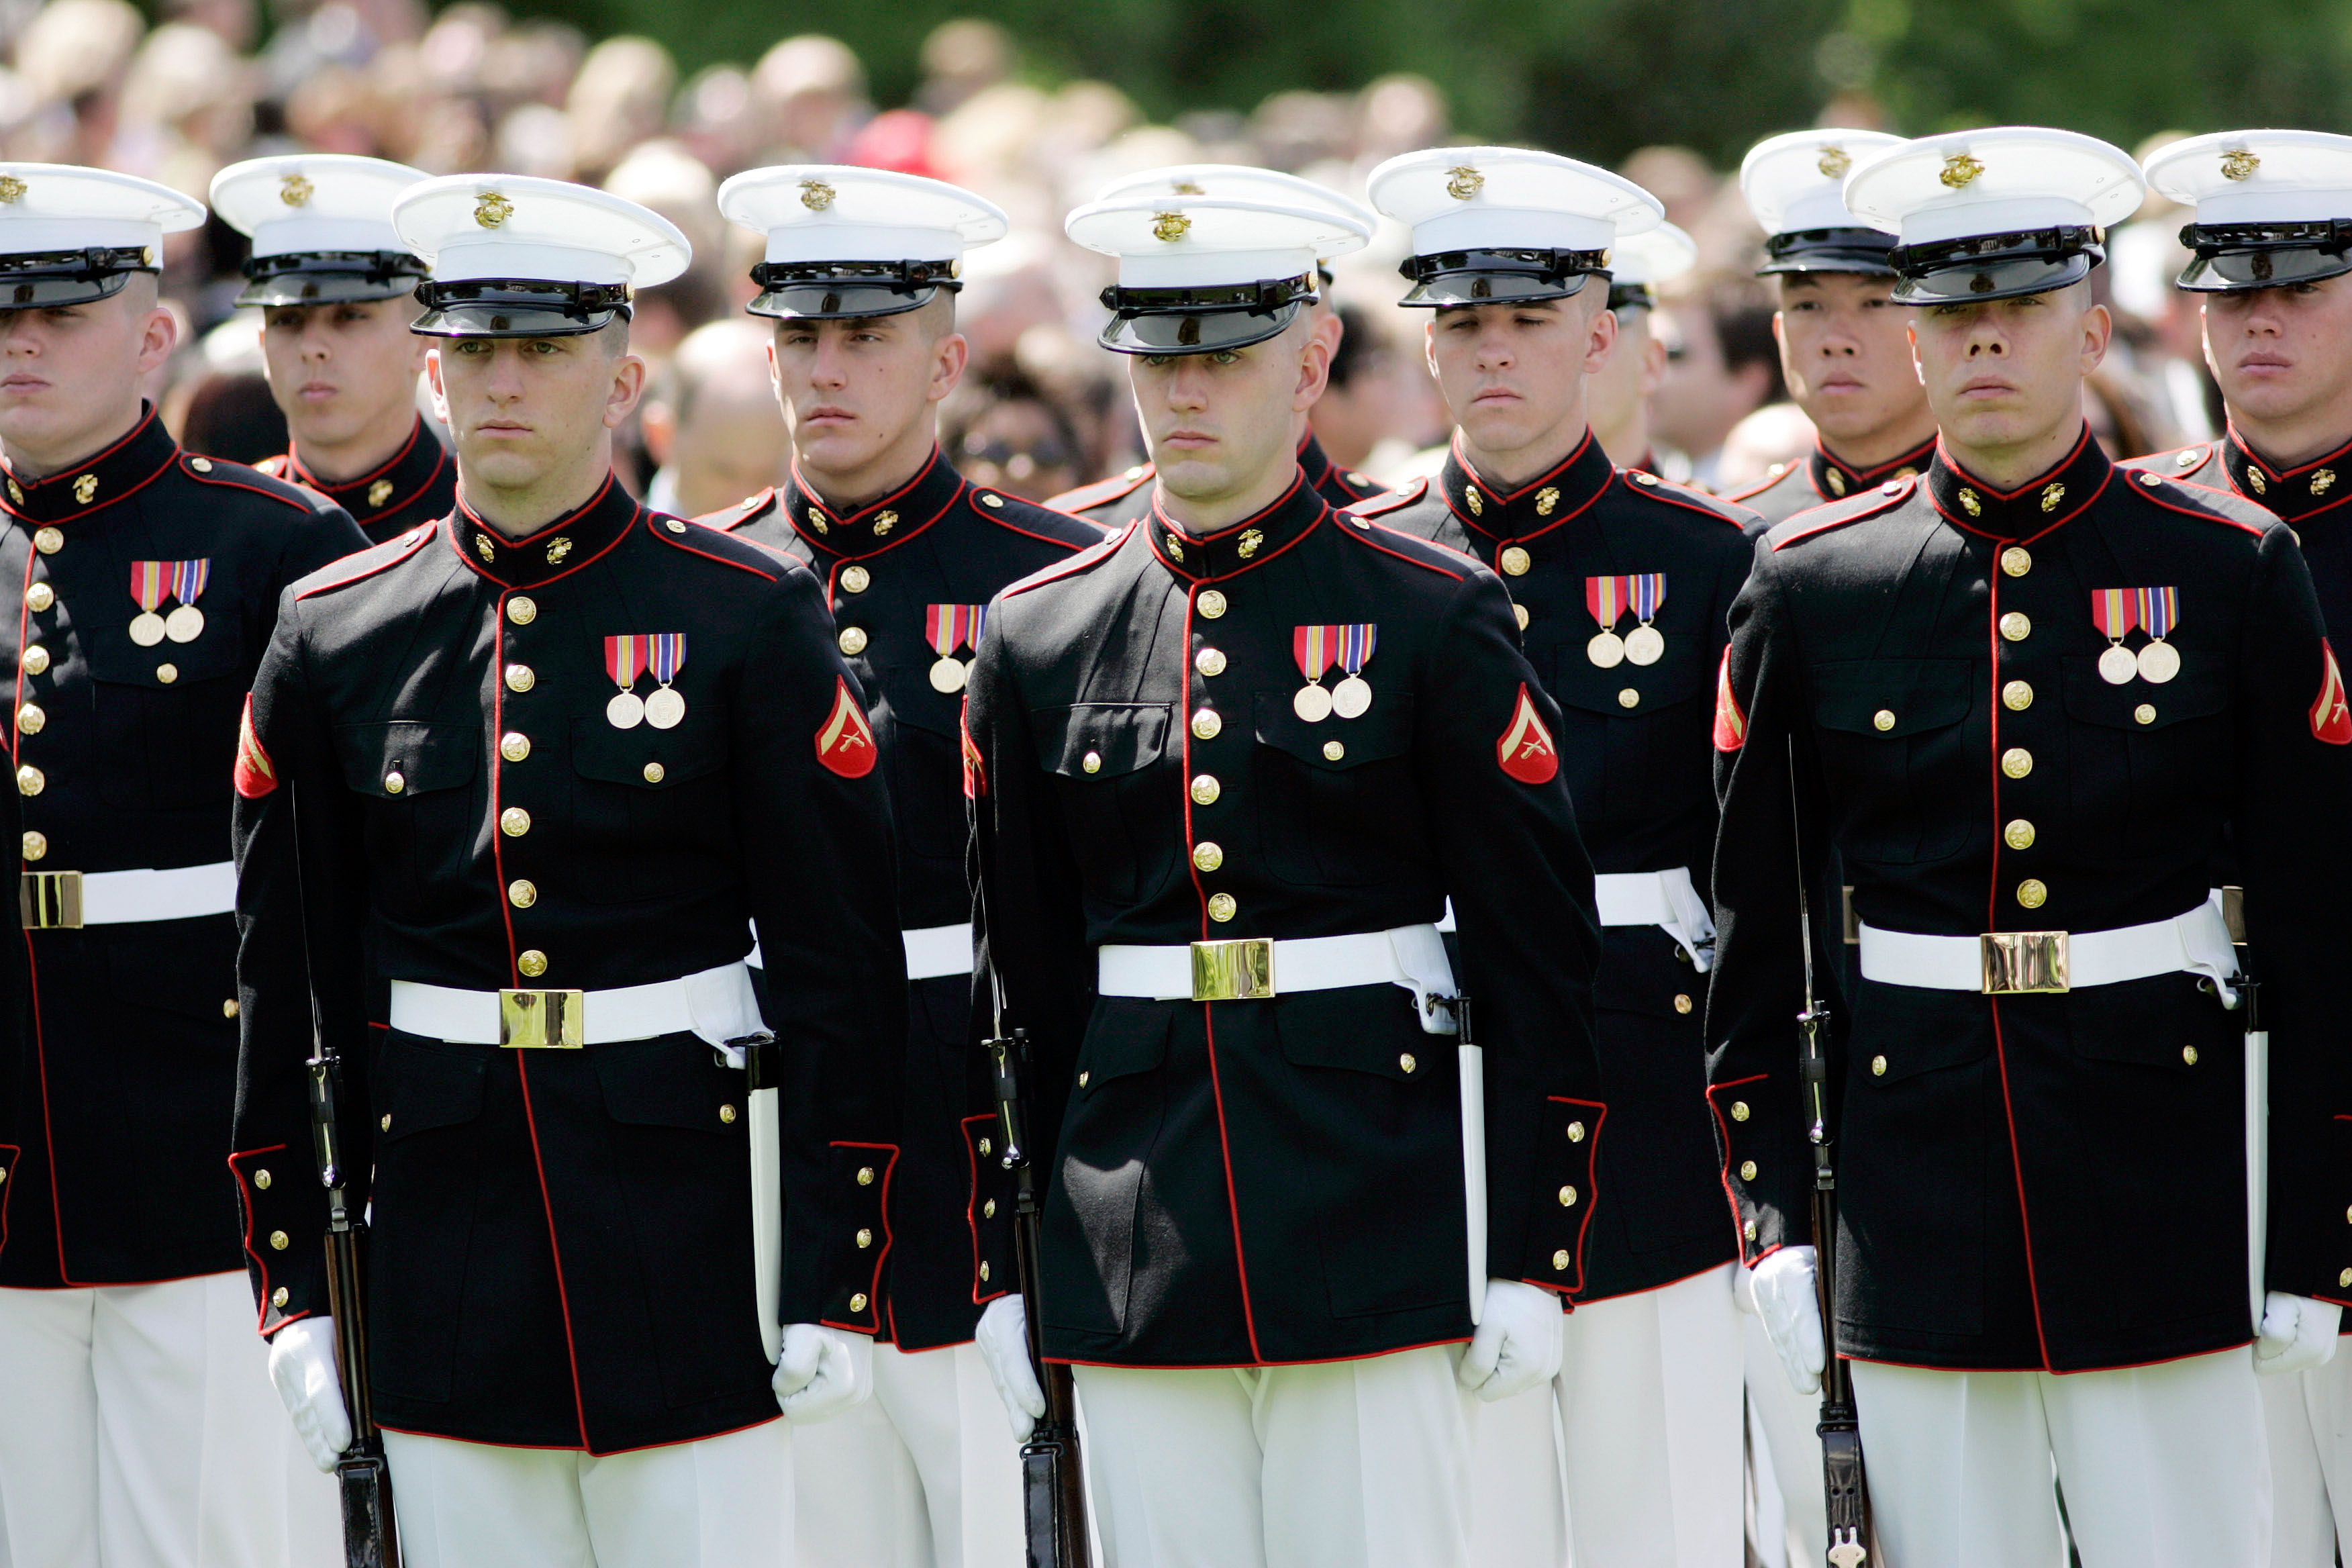 Us military enlistment standards heightweight what are the marine corps weight and fitness standards nvjuhfo Choice Image